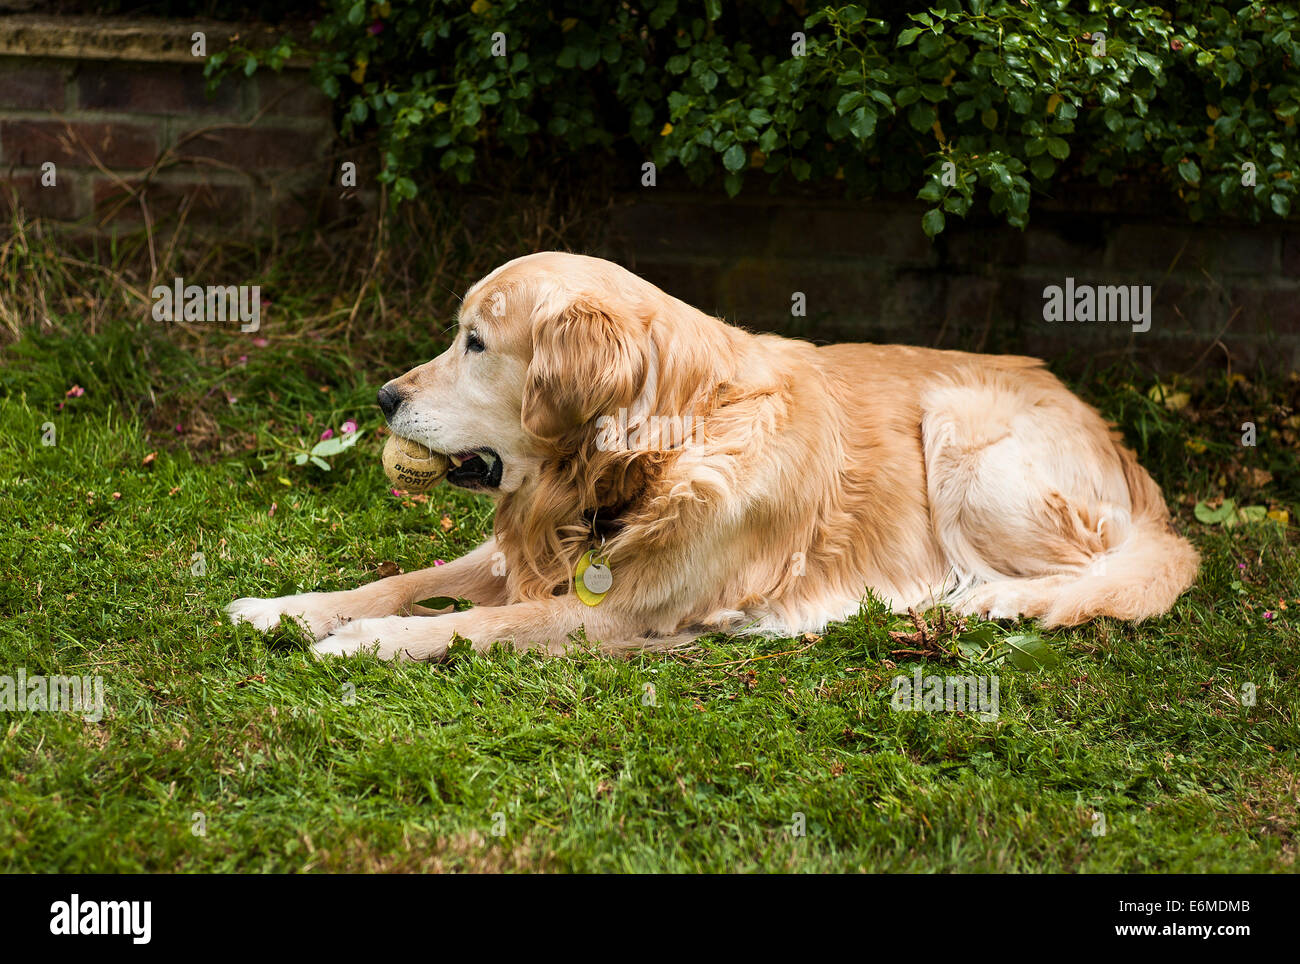 An old dog with tennis ball in mouth resting in a garden - Stock Image